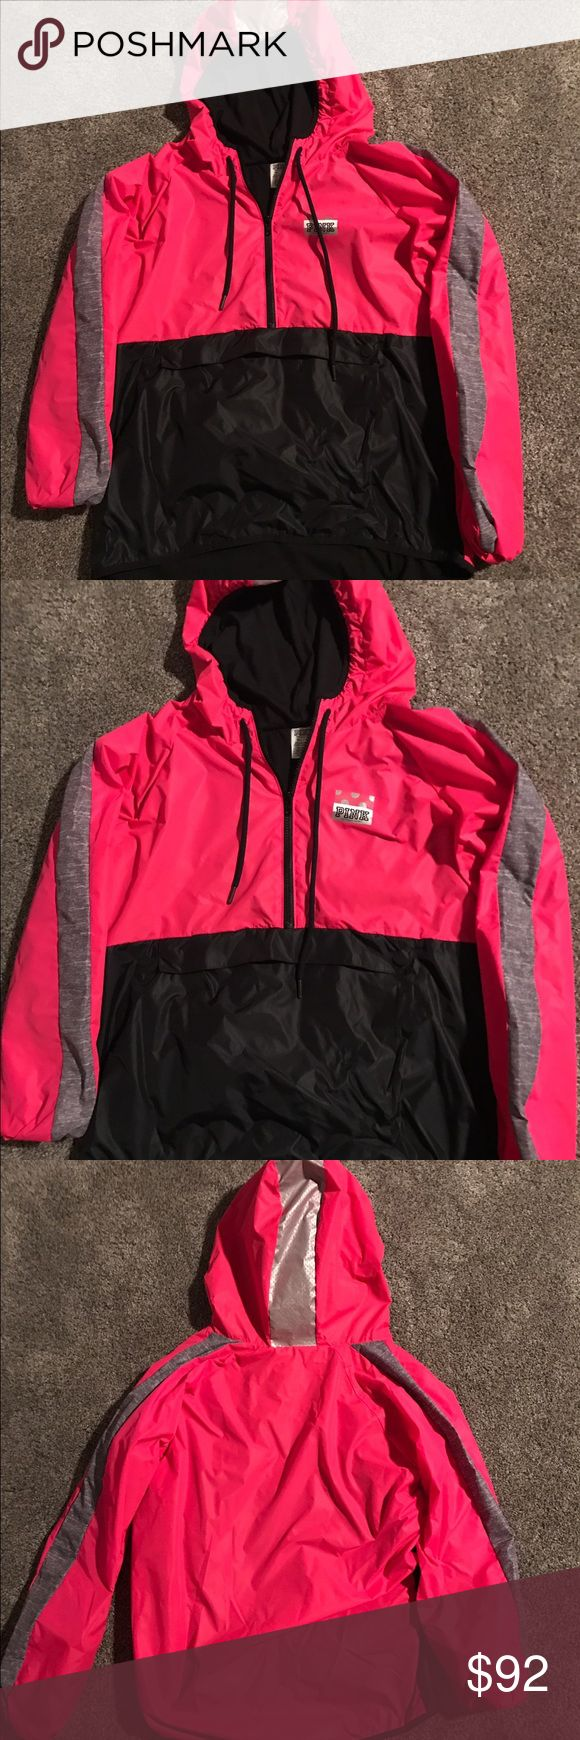 Victoria's Secret Pink Anorak Jacket Sz med/large Victoria's Secret Pink Anorak jacket in a size medium/large! Only worn one time and washed one time and hung to dry! No flaws at all! Super cute colors! Hard to find! Smoke free home! Inside is fleece lined! Front pouch pocket! PINK Victoria's Secret Jackets & Coats Utility Jackets